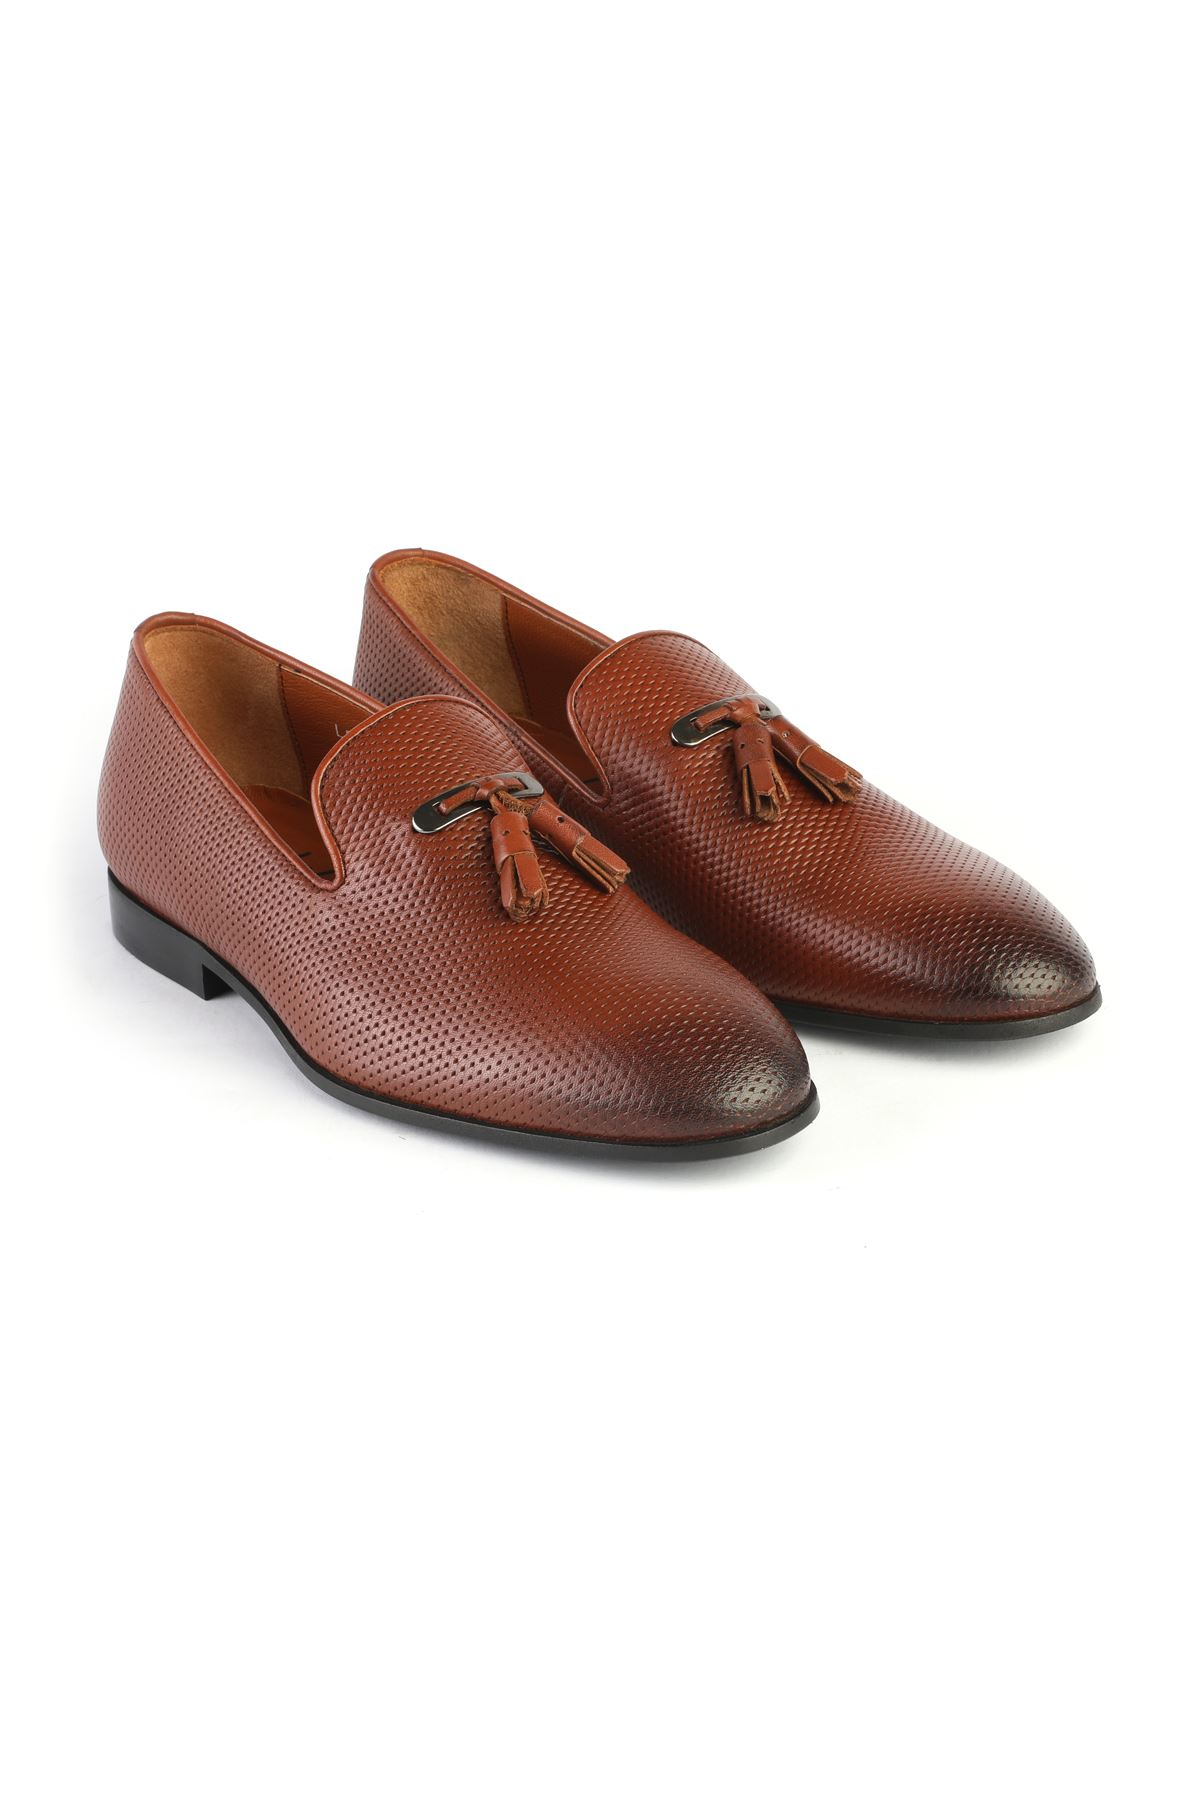 Libero 3324 Tan Loafer Shoes